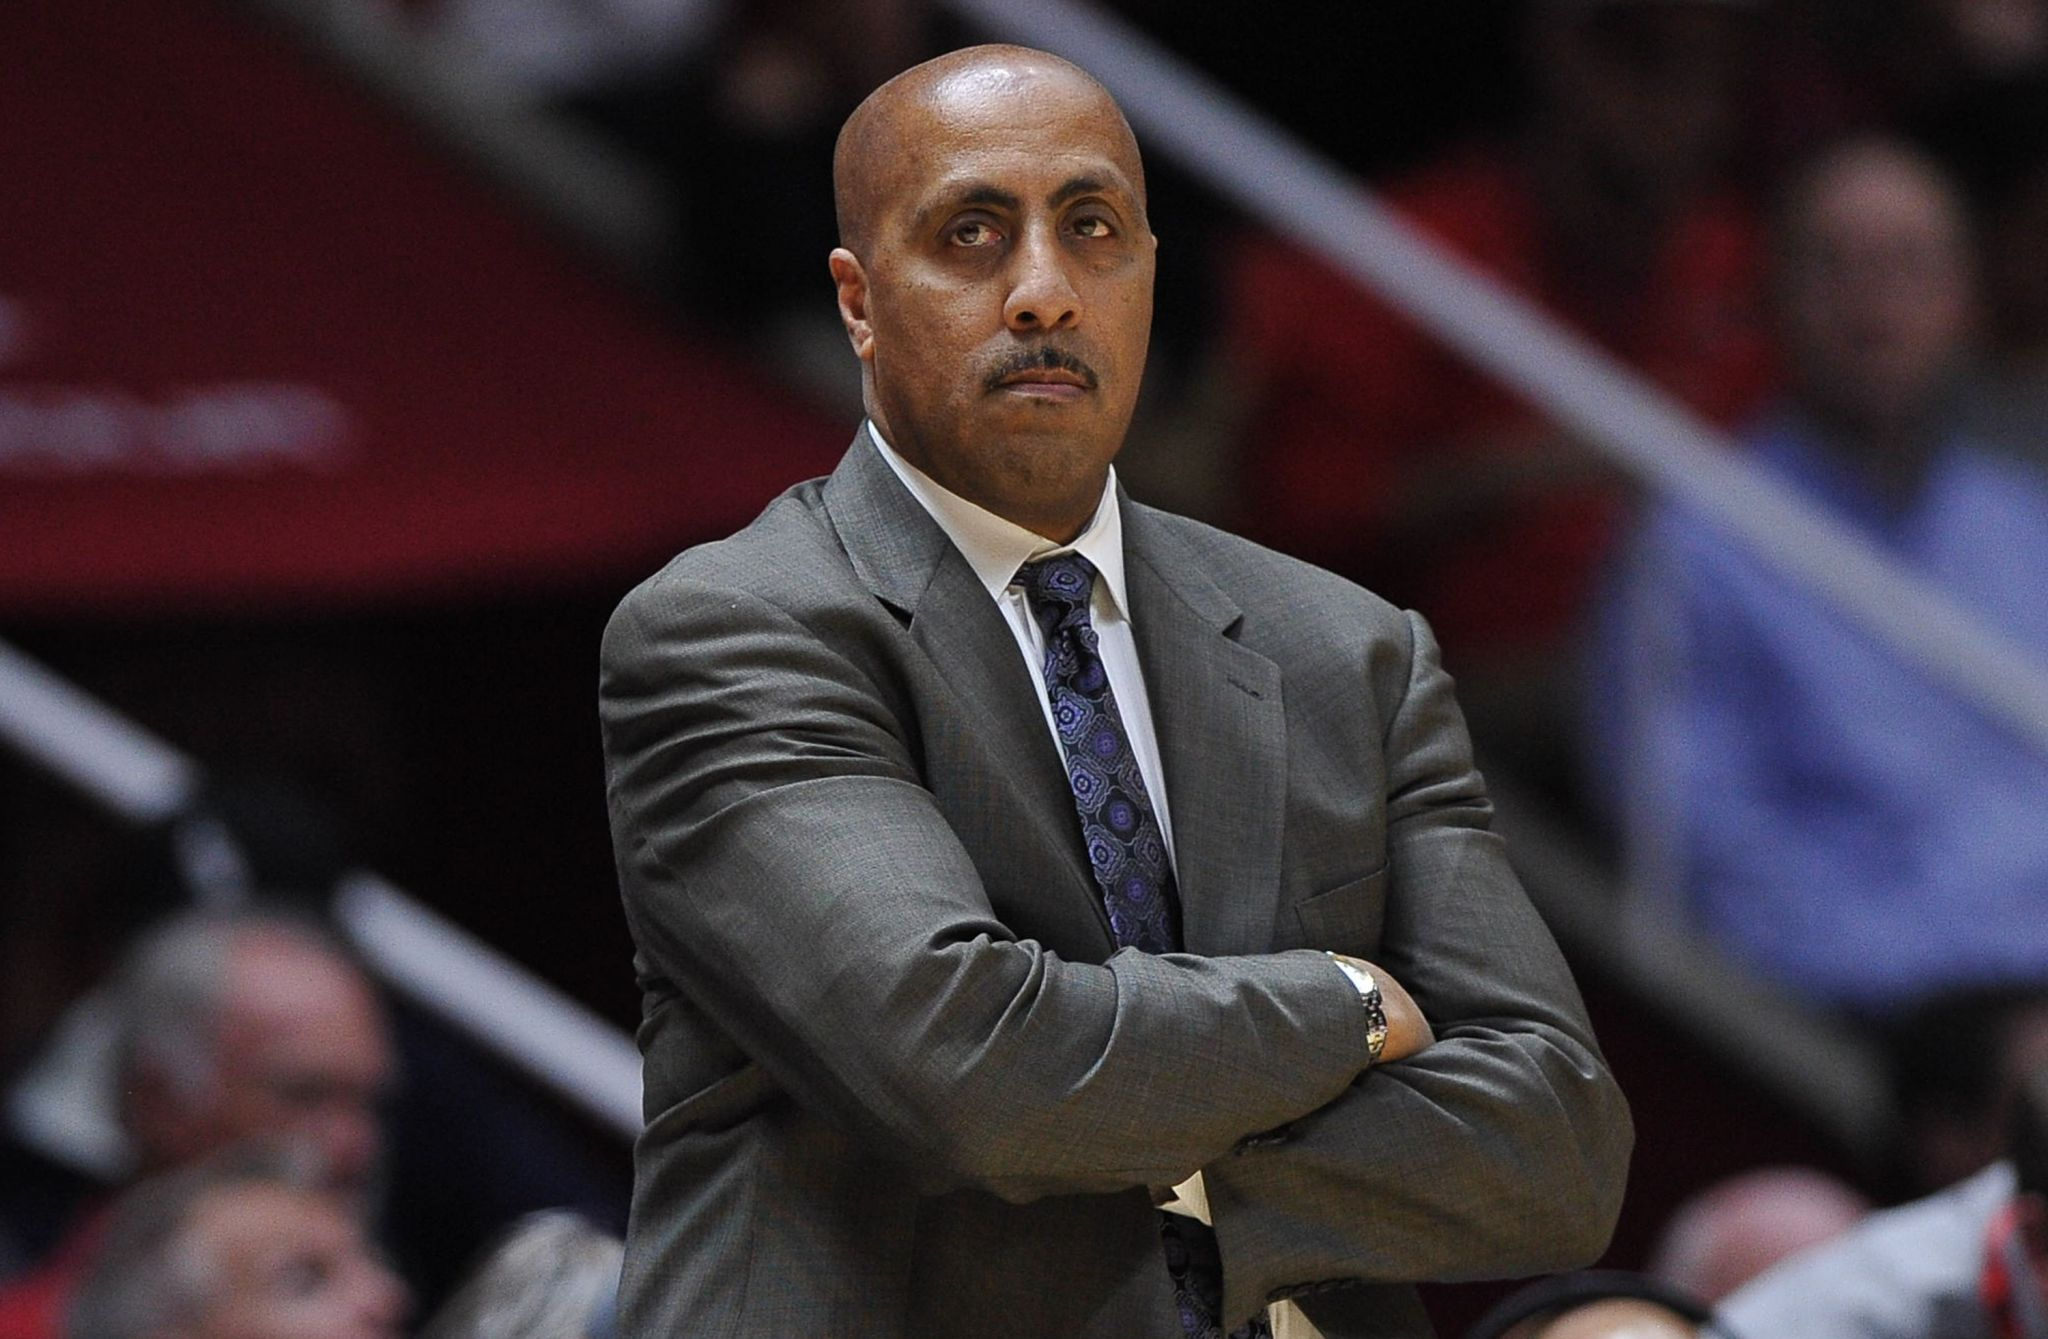 Jim Moore UW s Lorenzo Romar going too far for top recruits